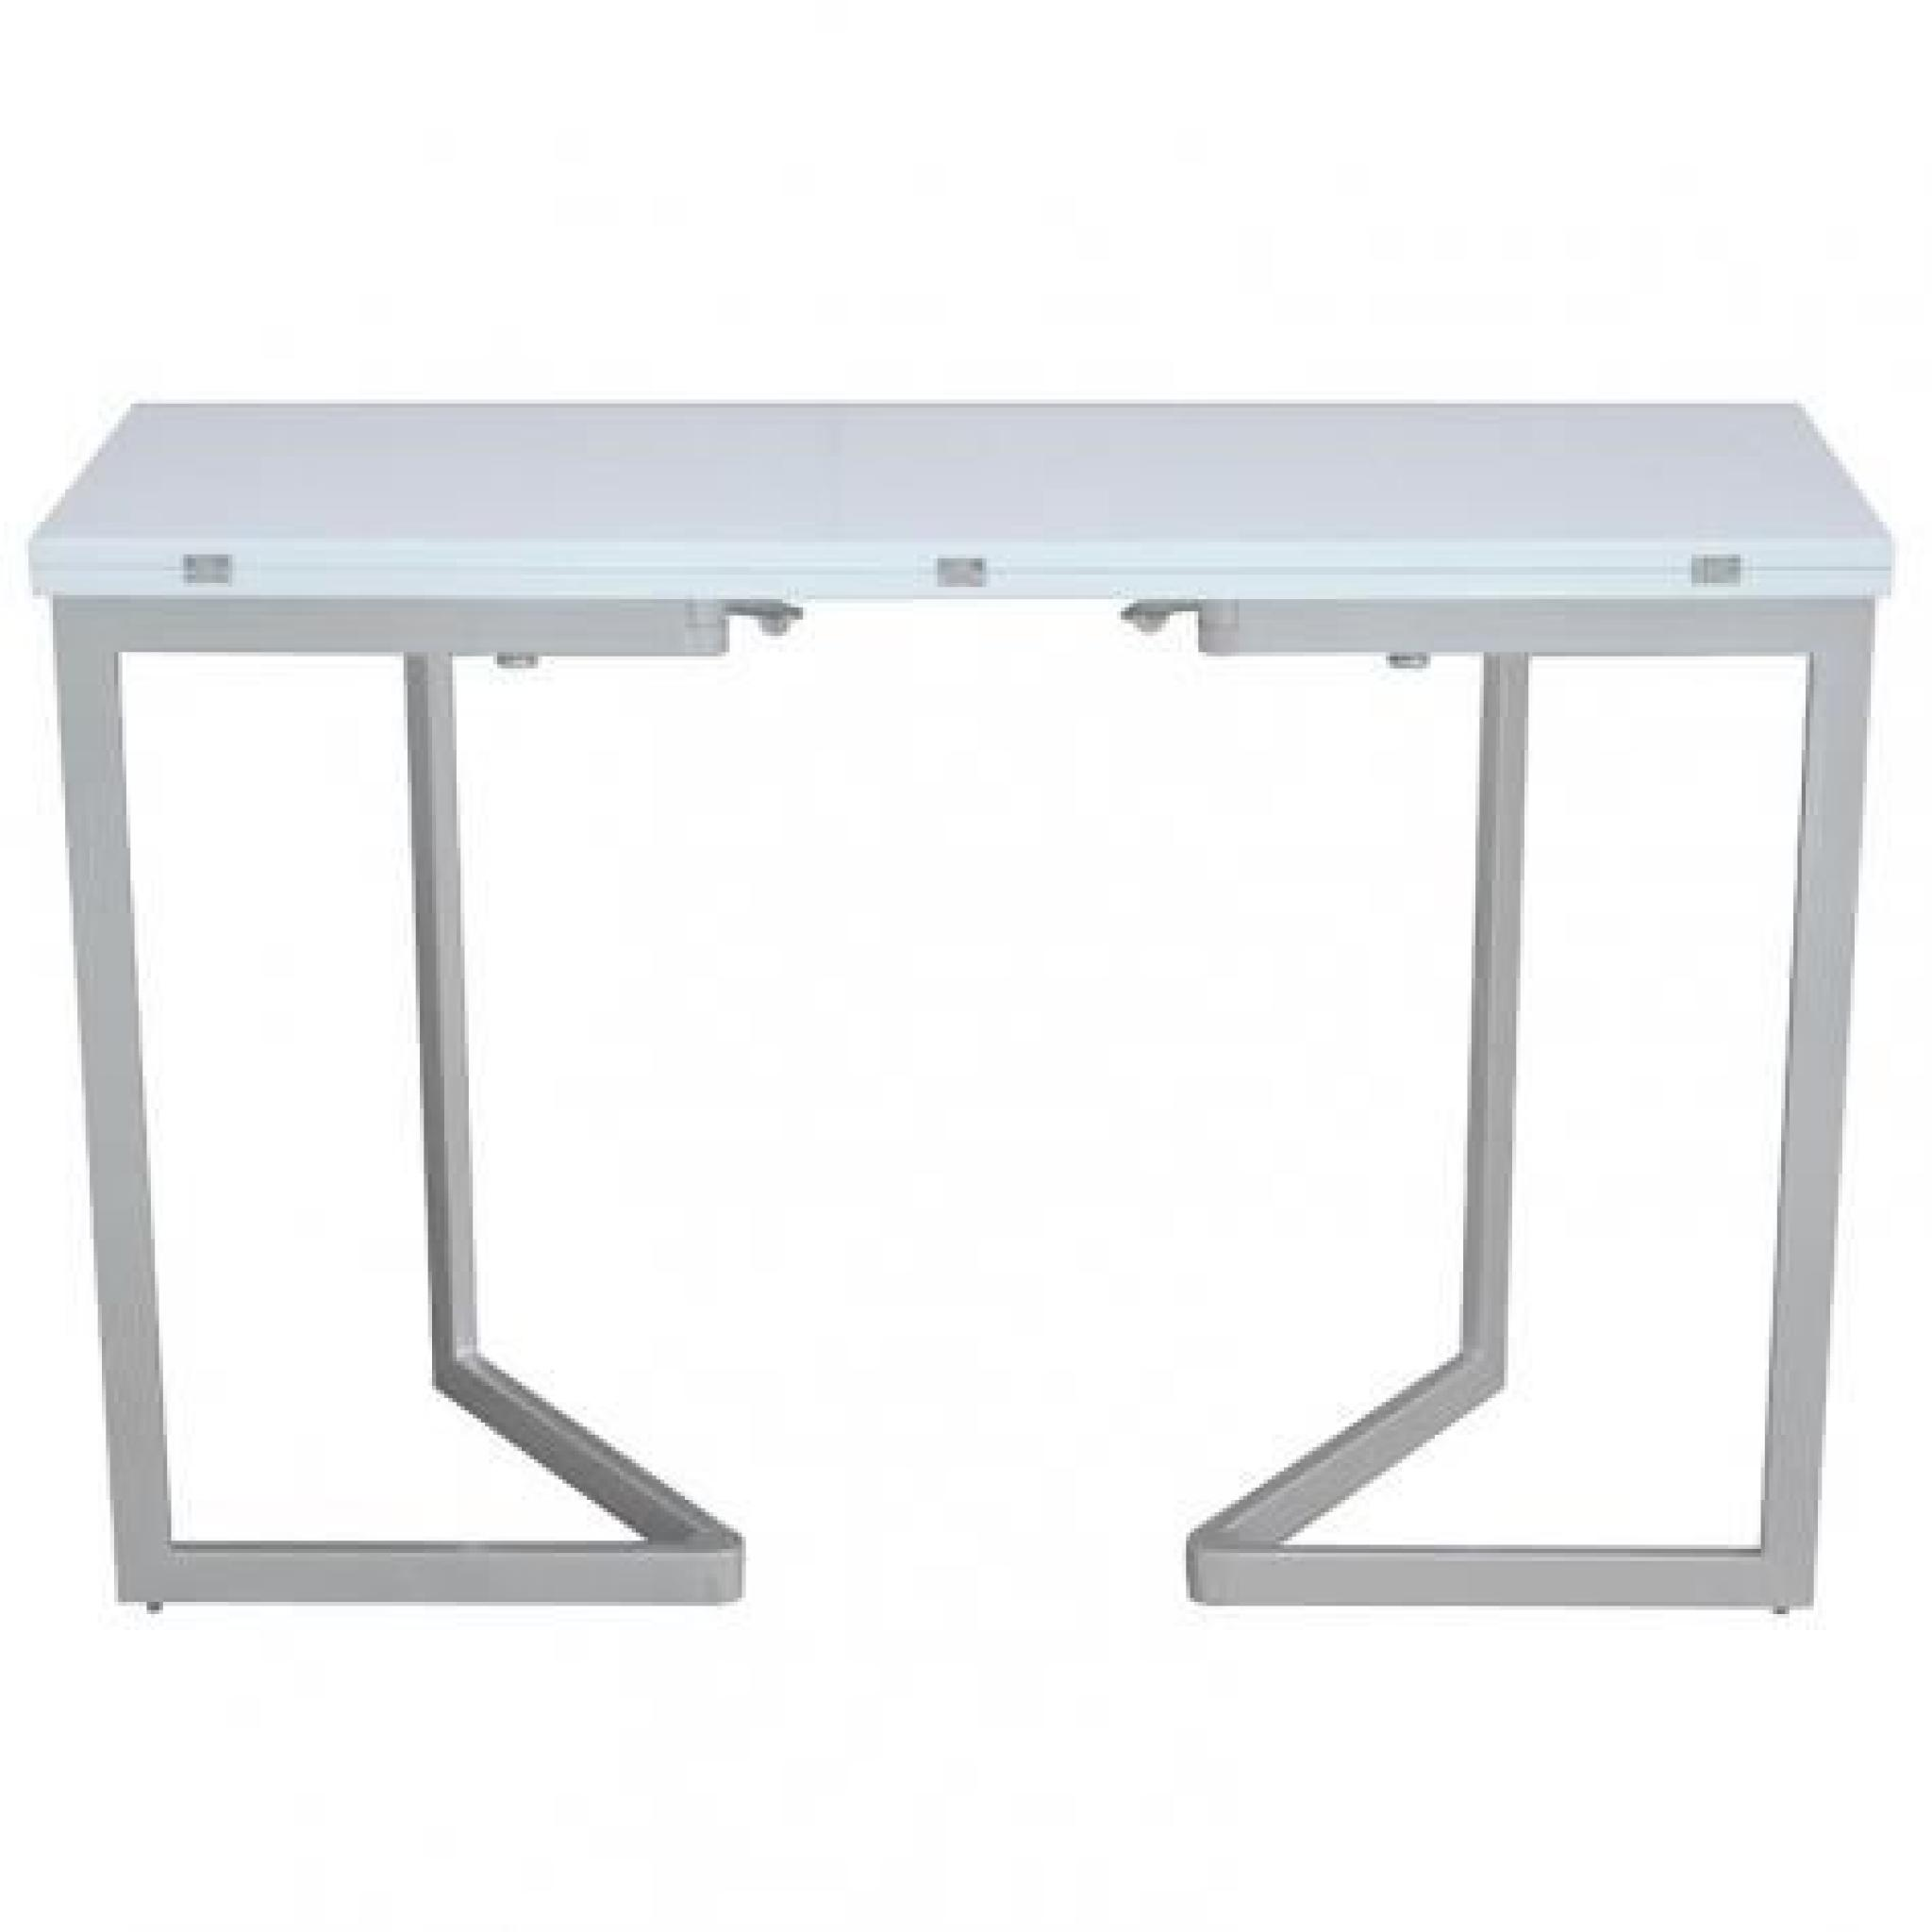 Table Console Mural Extensible Laquee Blanc Xena Achat Vente